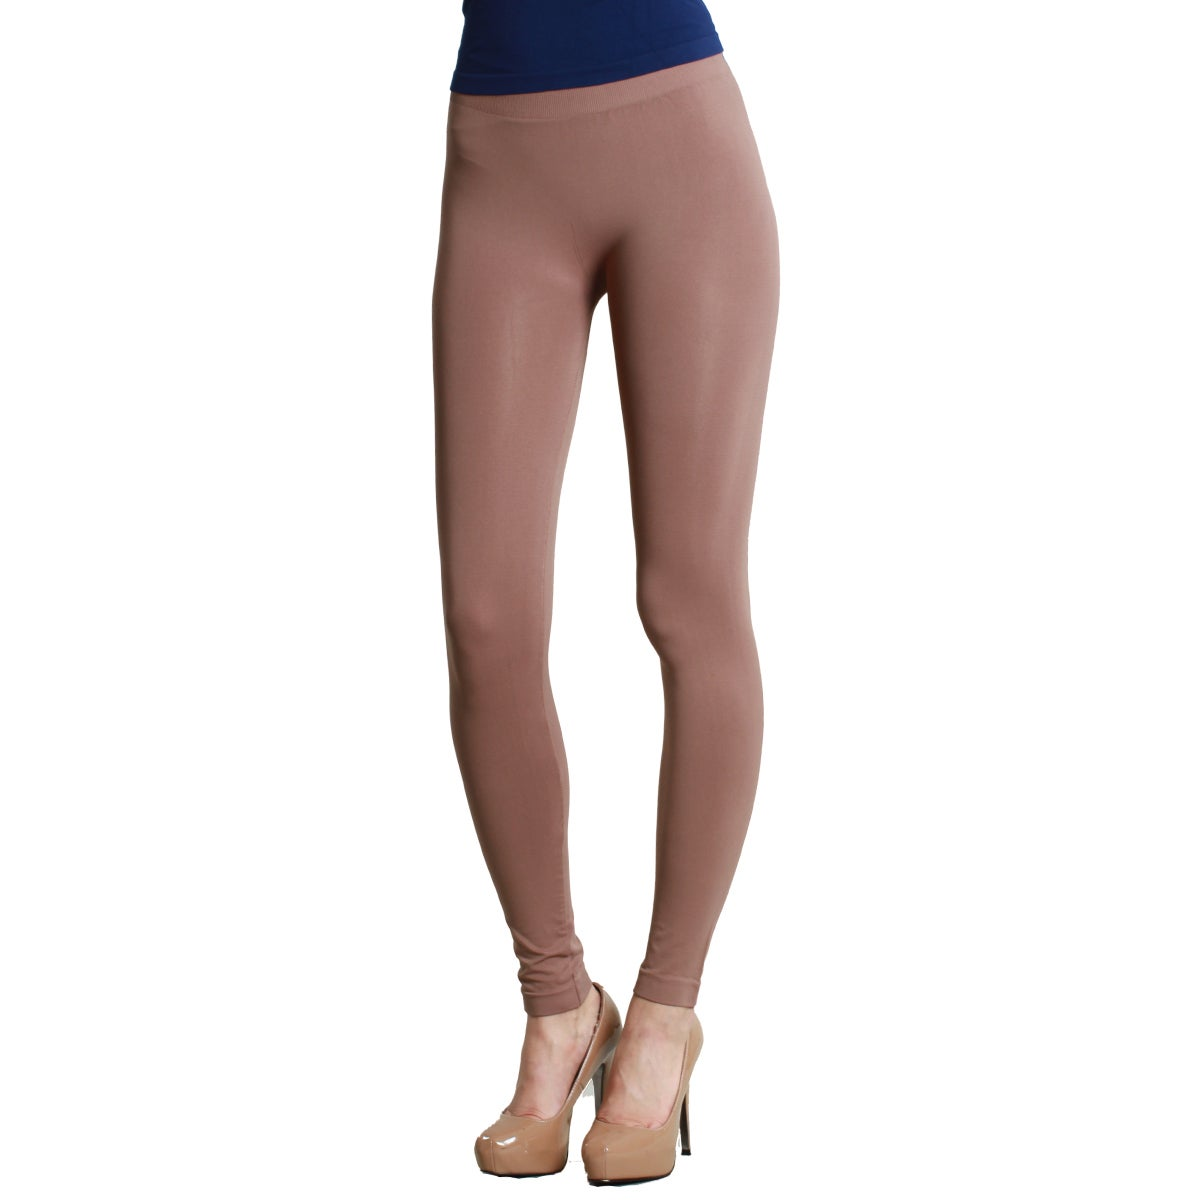 5d04cf069ae9a6 Shop Nikibiki Women's Plain Jersey Ankle Length Leggings - Free Shipping On  Orders Over $45 - Overstock - 9741305